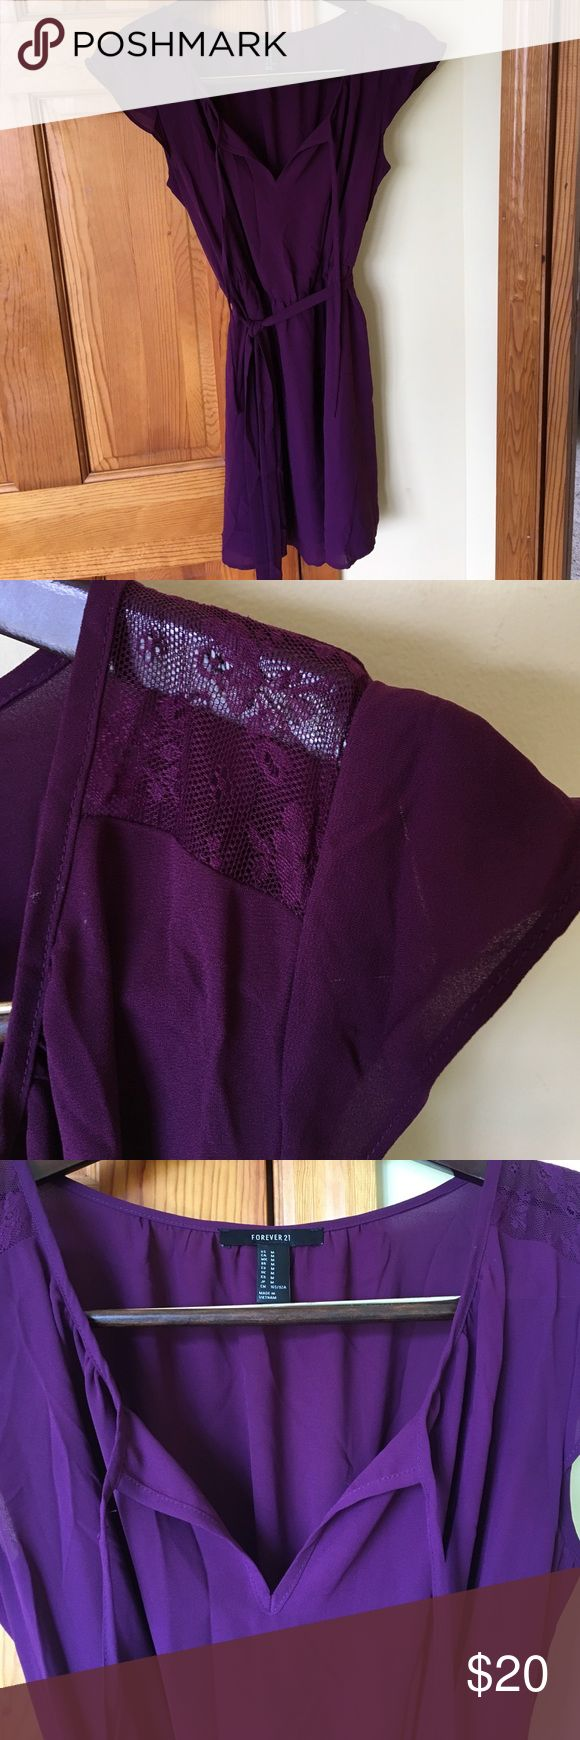 Purple casual dress. This purple dress was worn once! The dress is belted and has lace capped sleeves. Forever 21 Dresses Mini